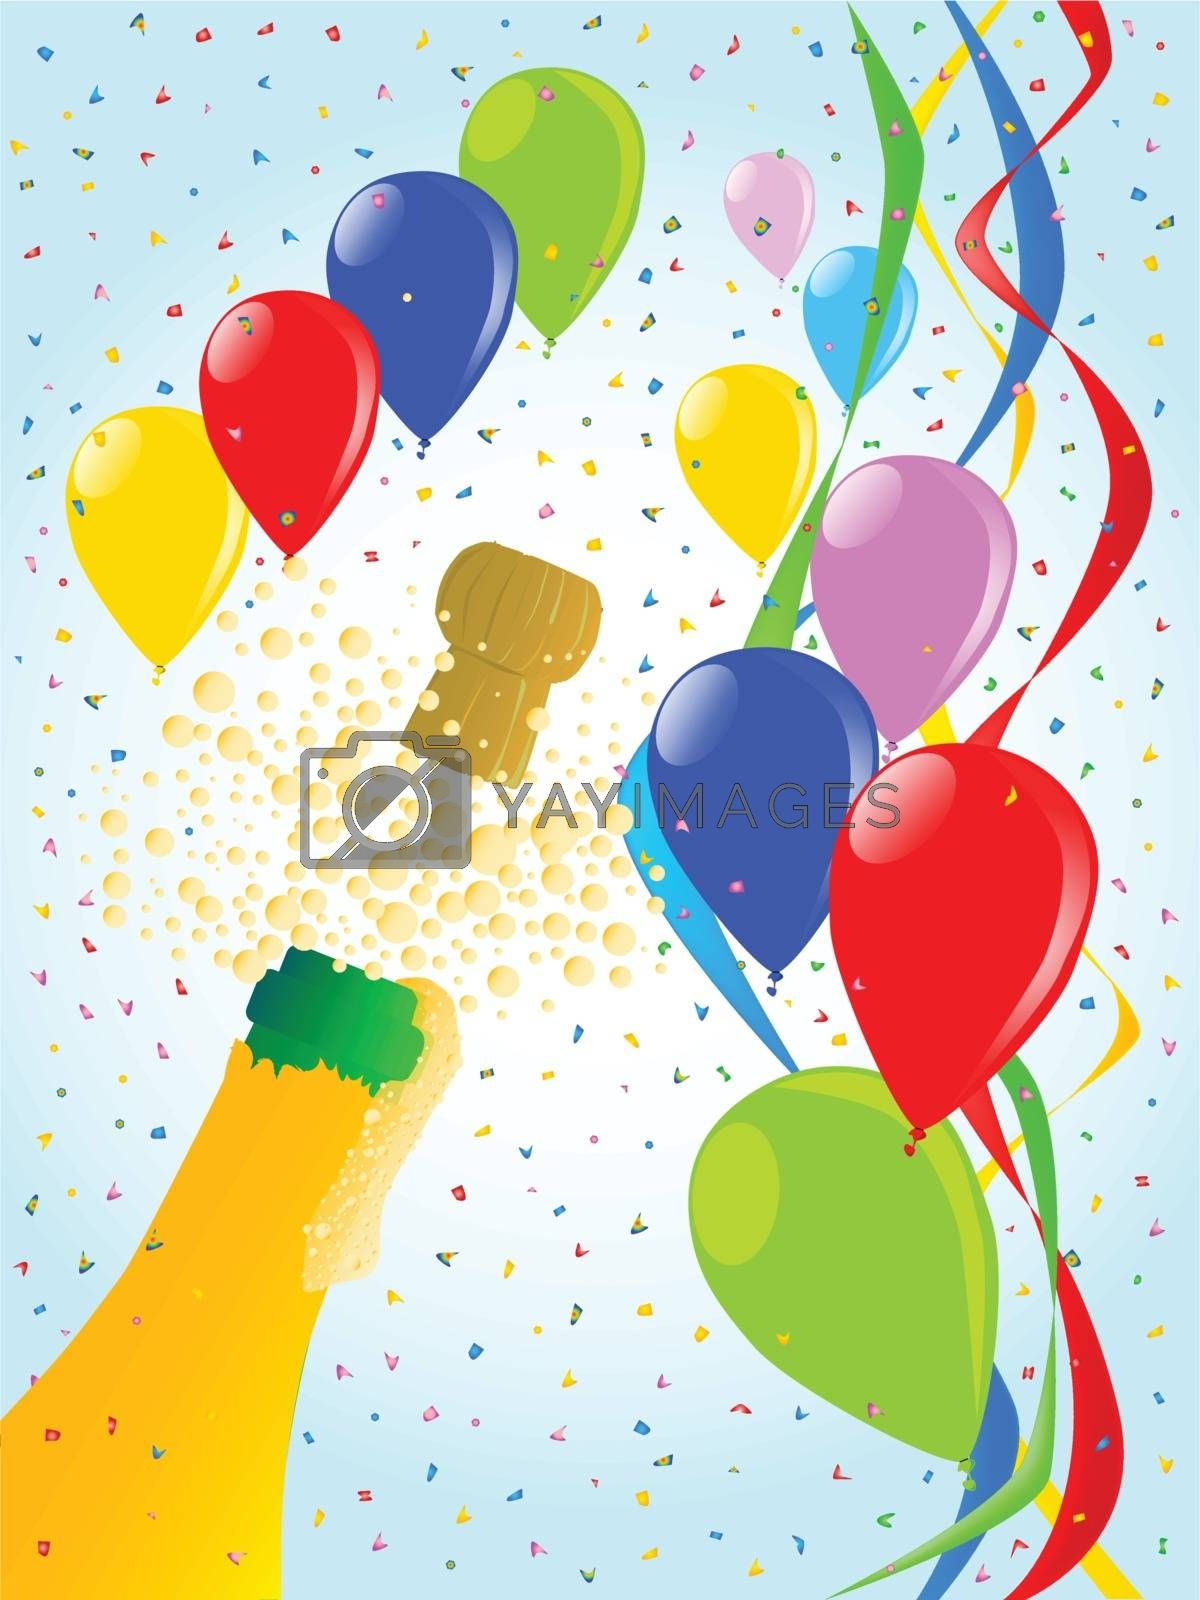 Multi coloured balloons, confetti and streamers, a party image.